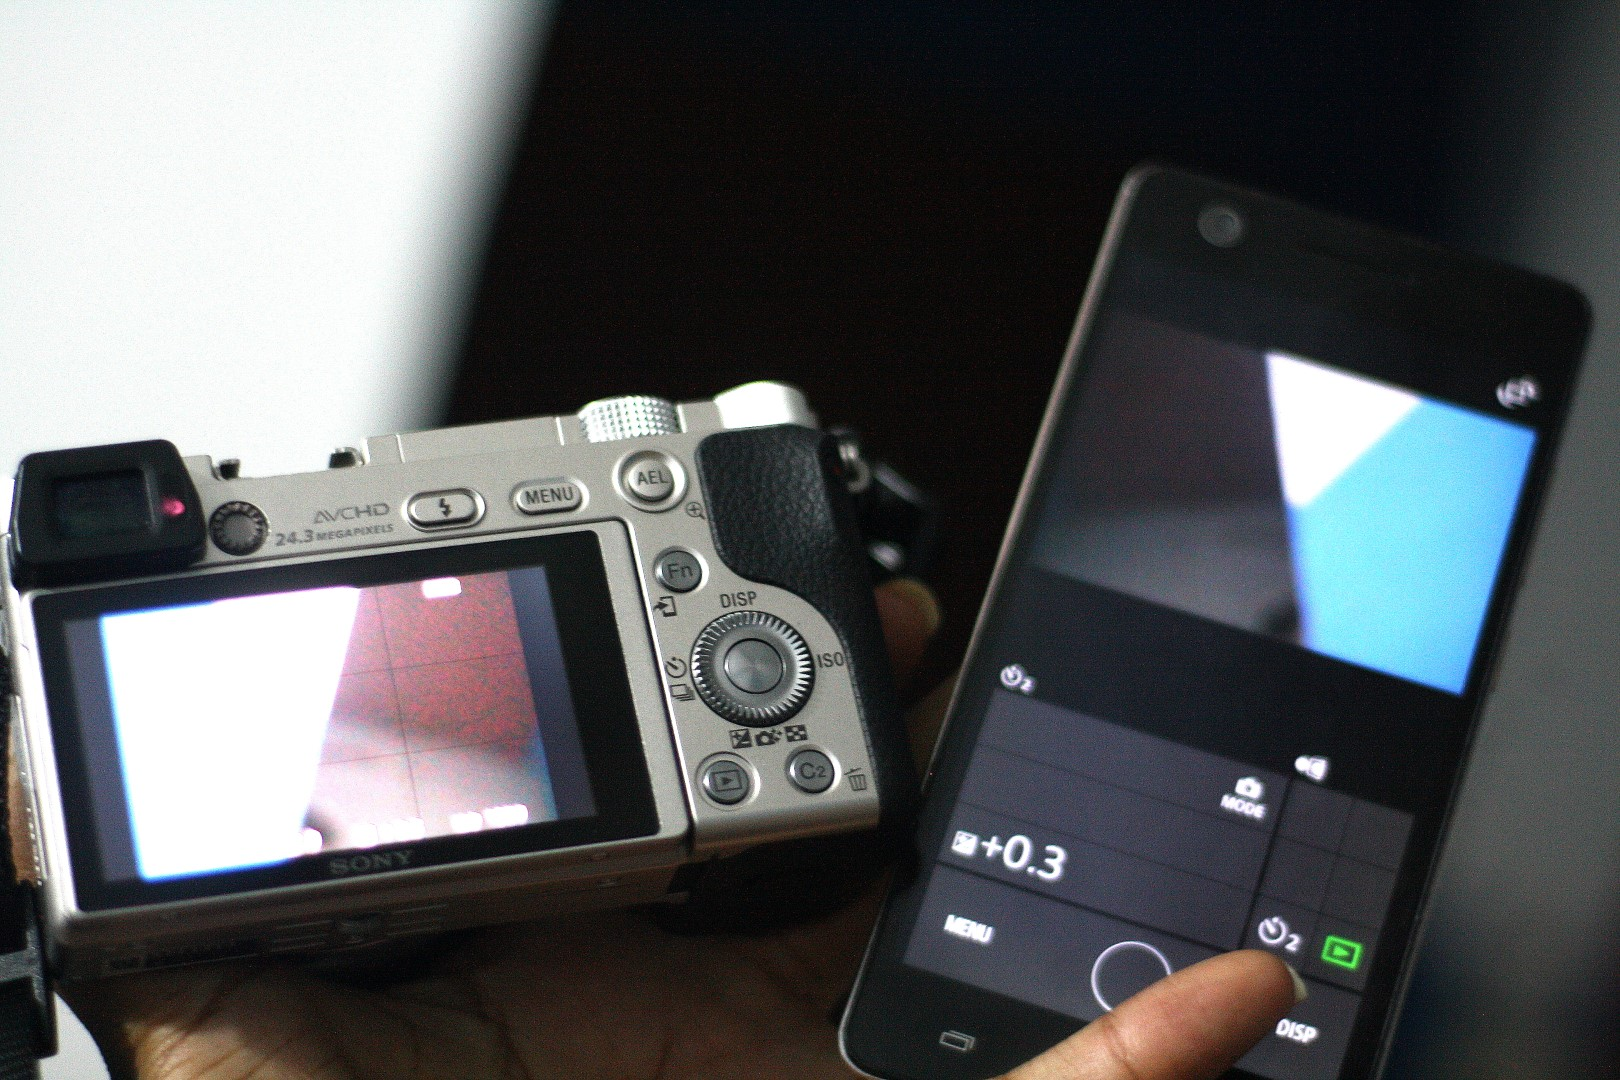 Picture showing the Sony A6000 and an infinix hot s connected together via Wifi